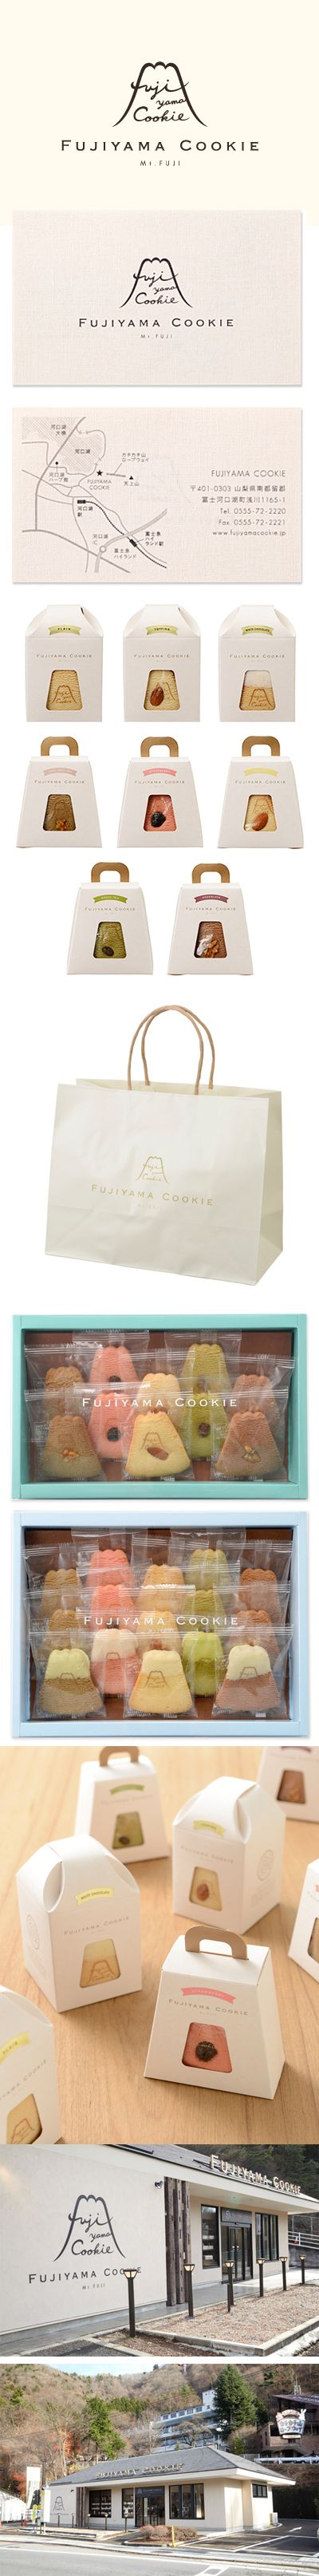 Woo Hoo Cheng Yuan Chieh here's the whole Fujiyama cookie #identity #packaging #branding story PD